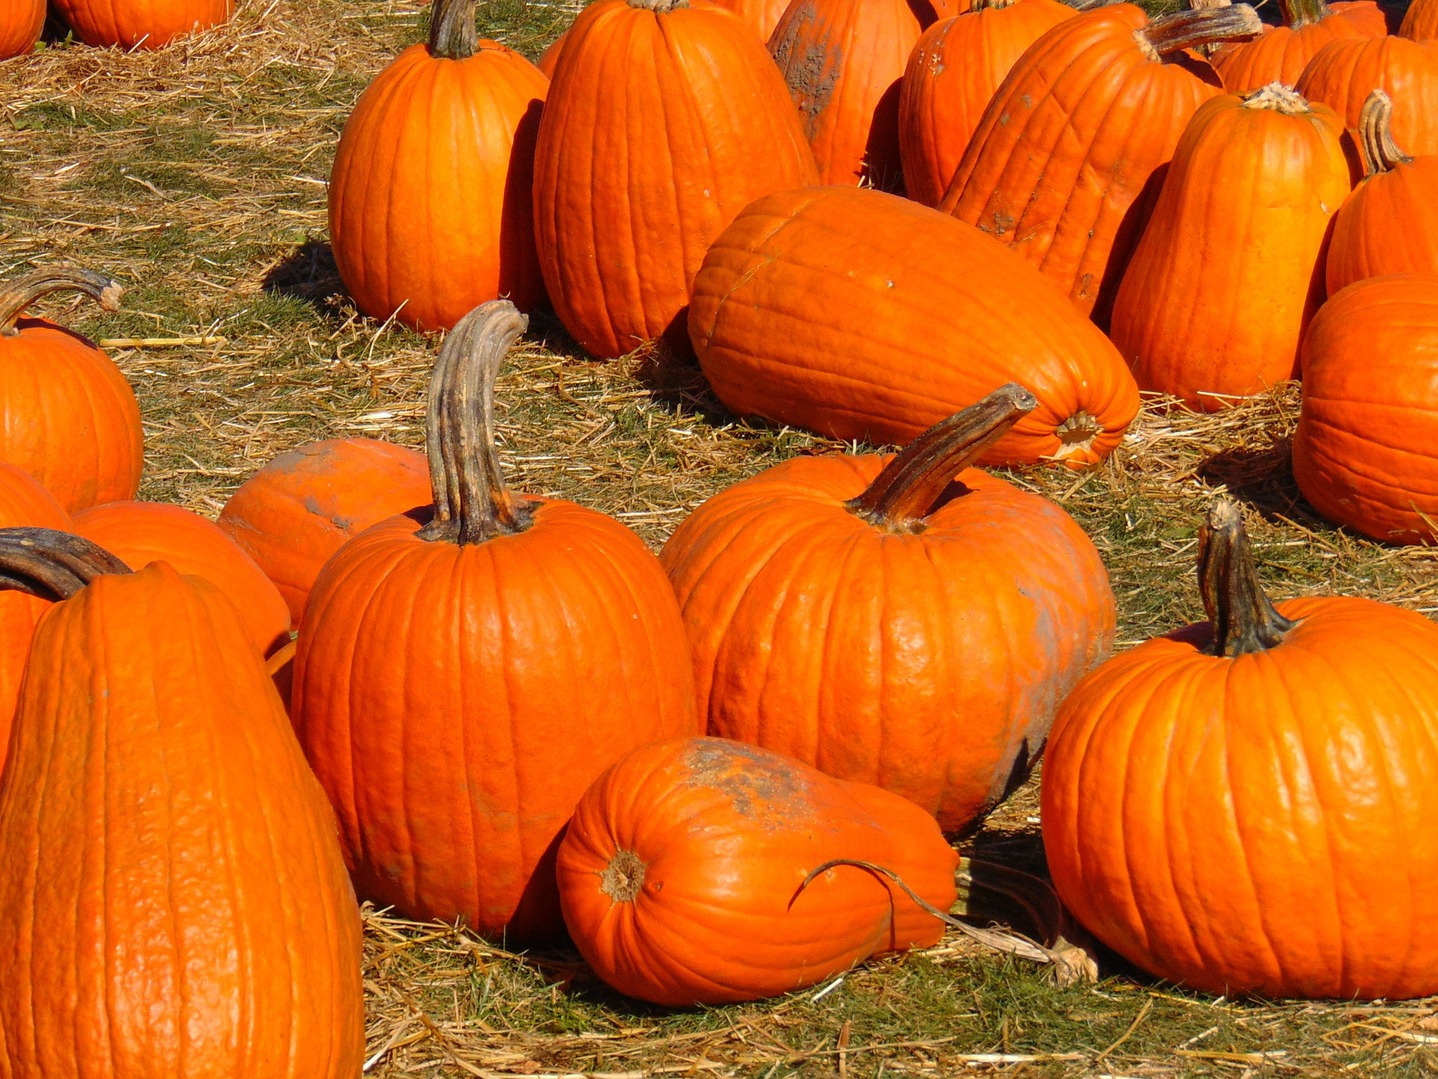 The best pumpkin patches near the Hub